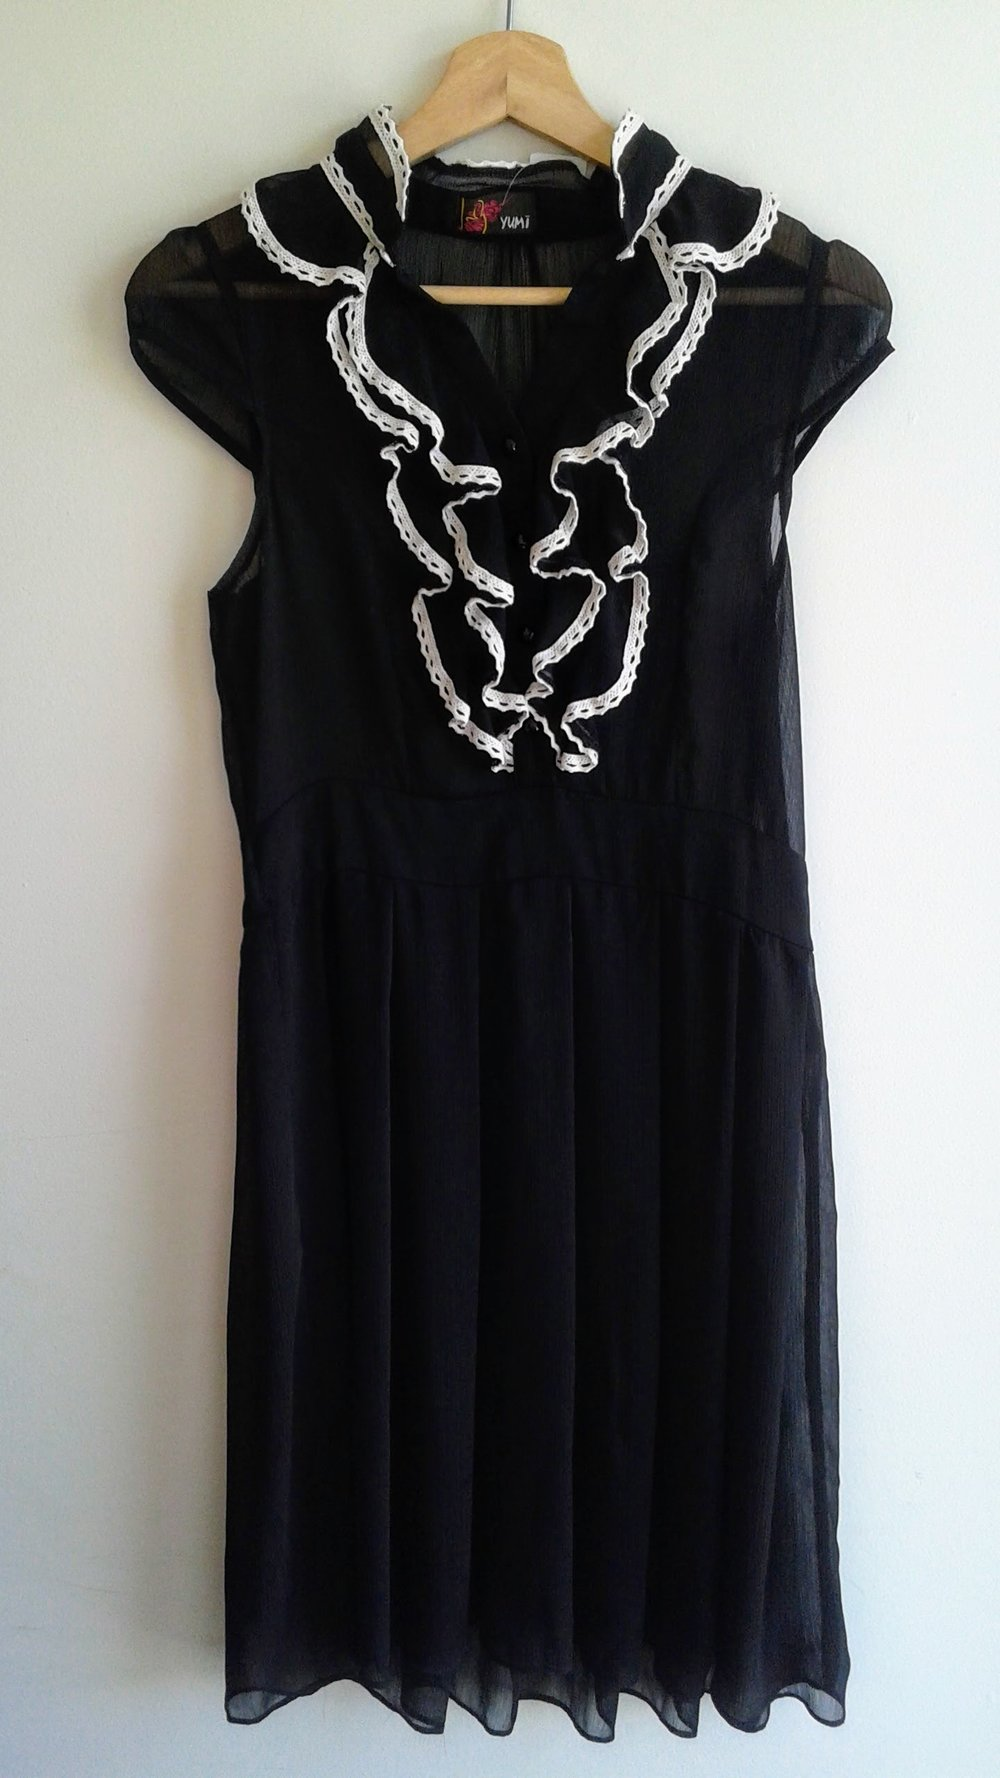 Yumi dress; Size S, $32